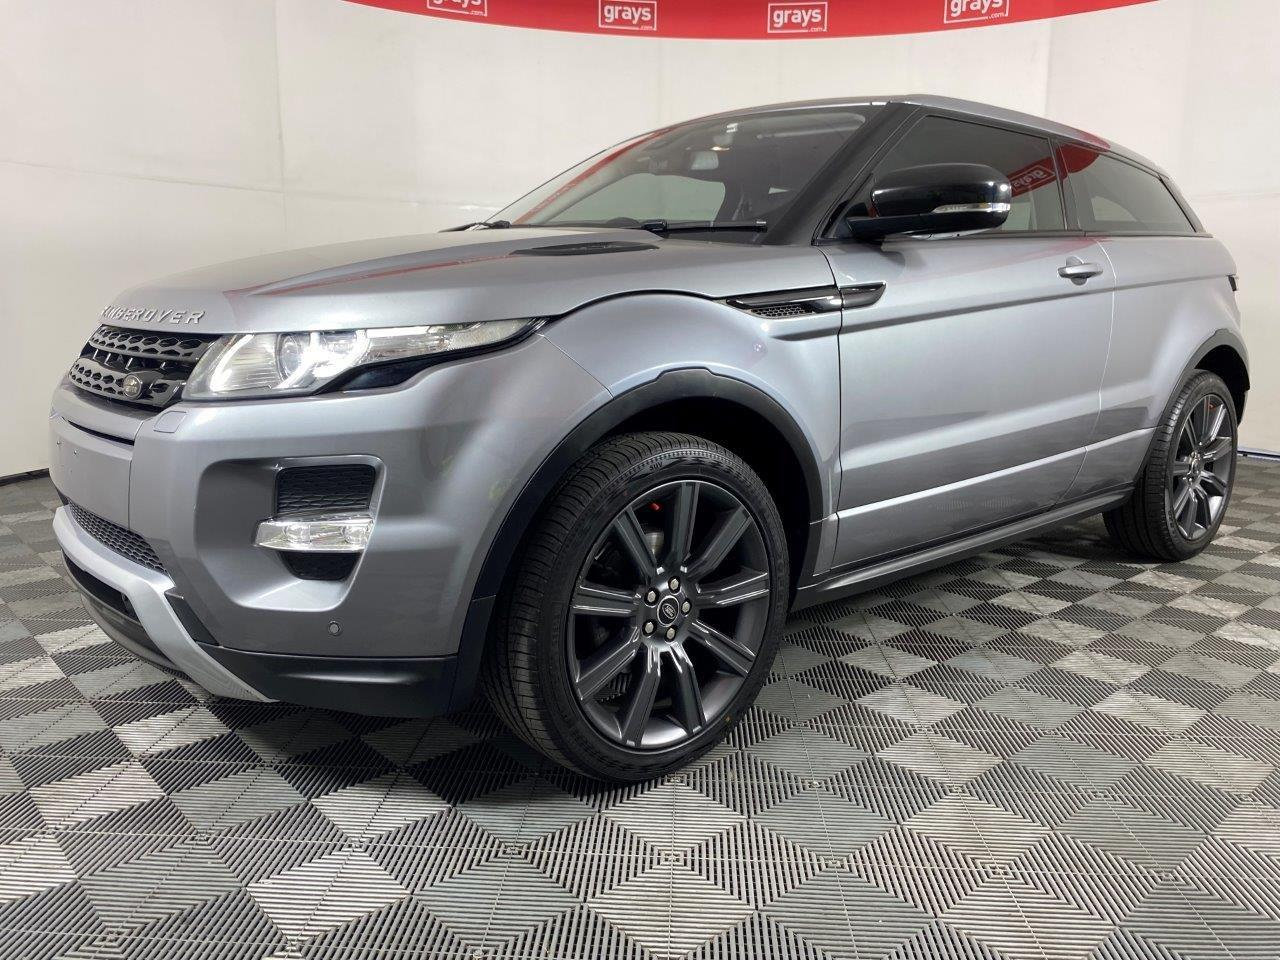 2013 Land Rover Range Rover Evoque TD4 DYNAMIC Turbo Diesel Automatic Coupe